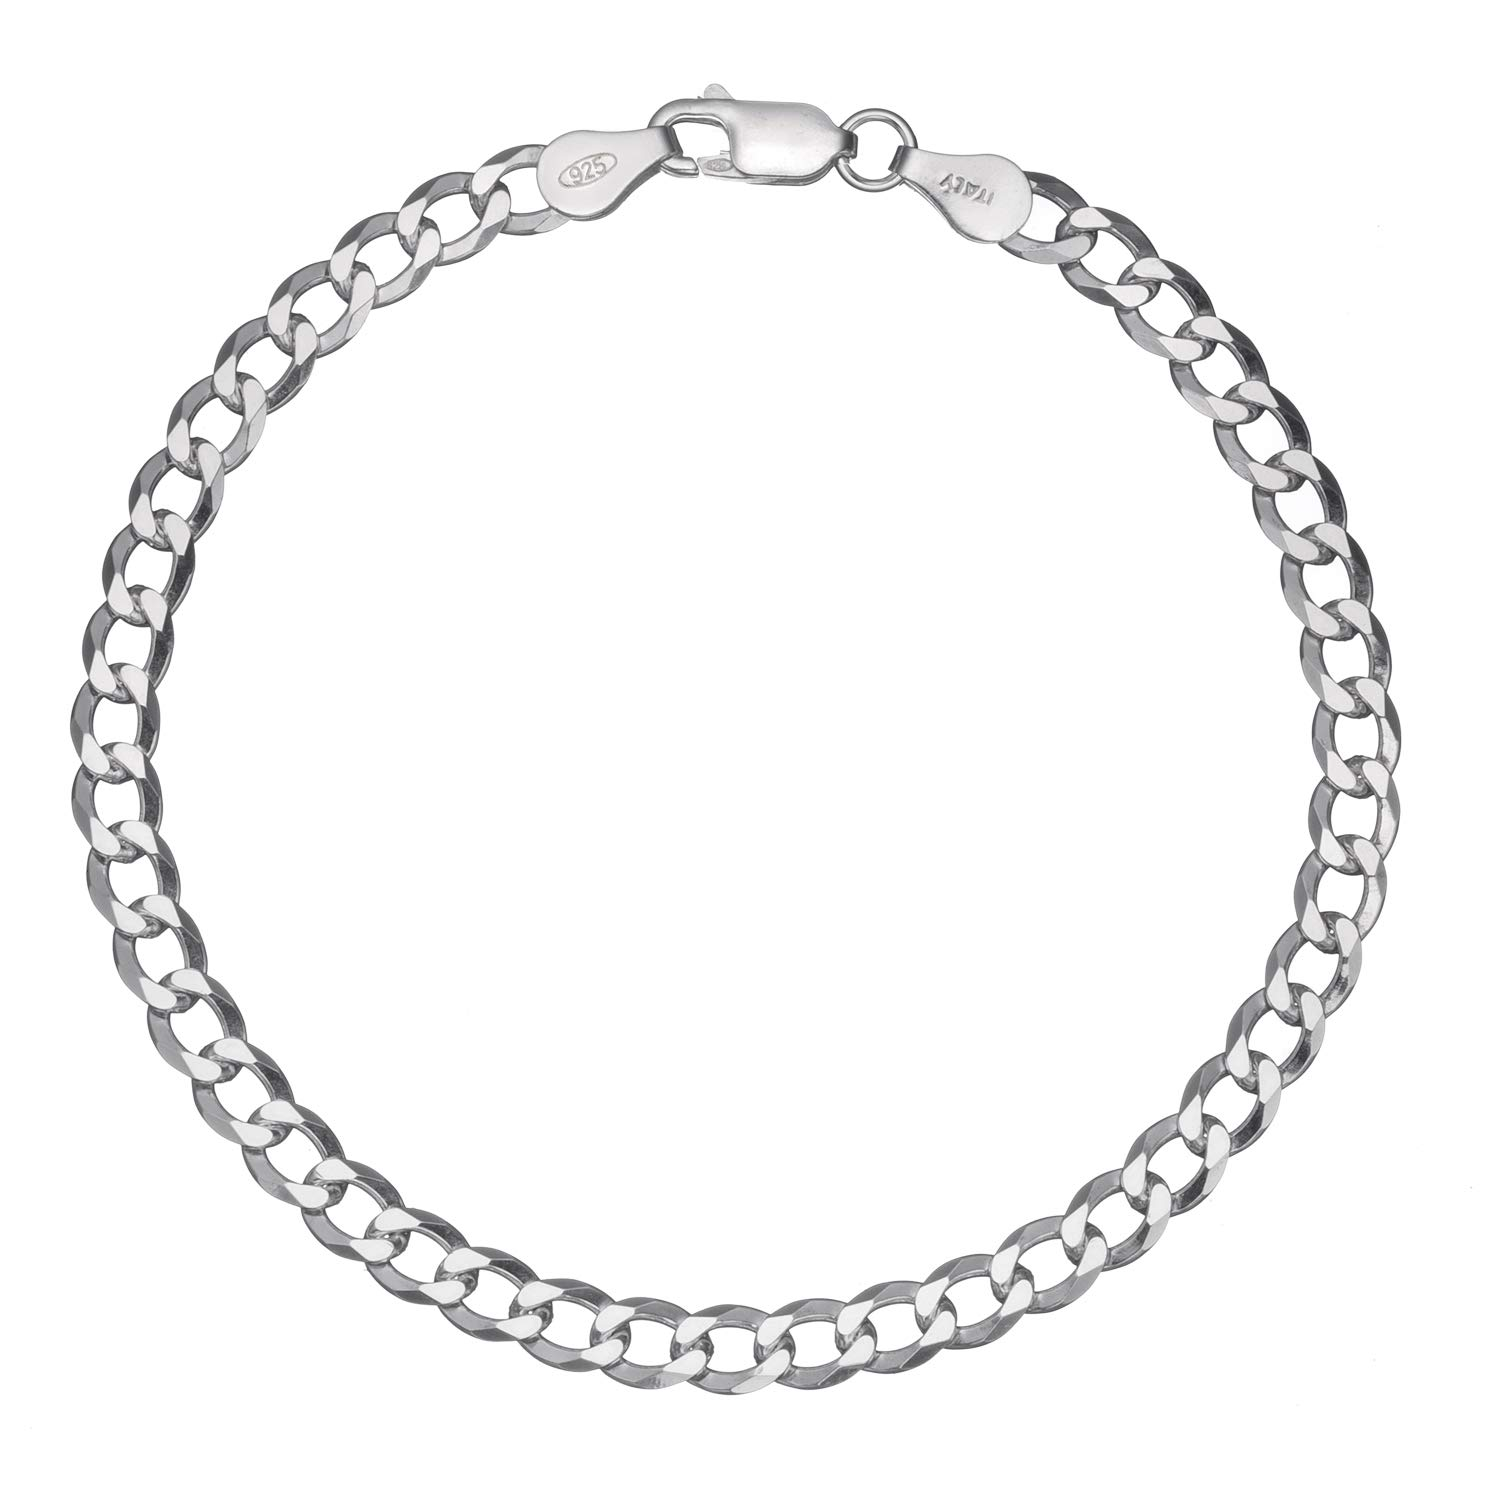 Solid 925 Sterling Silver Men's Italian 4.5mm Cuban Curb Link Chain Bracelet 7' - 8' Bling For Your Buck